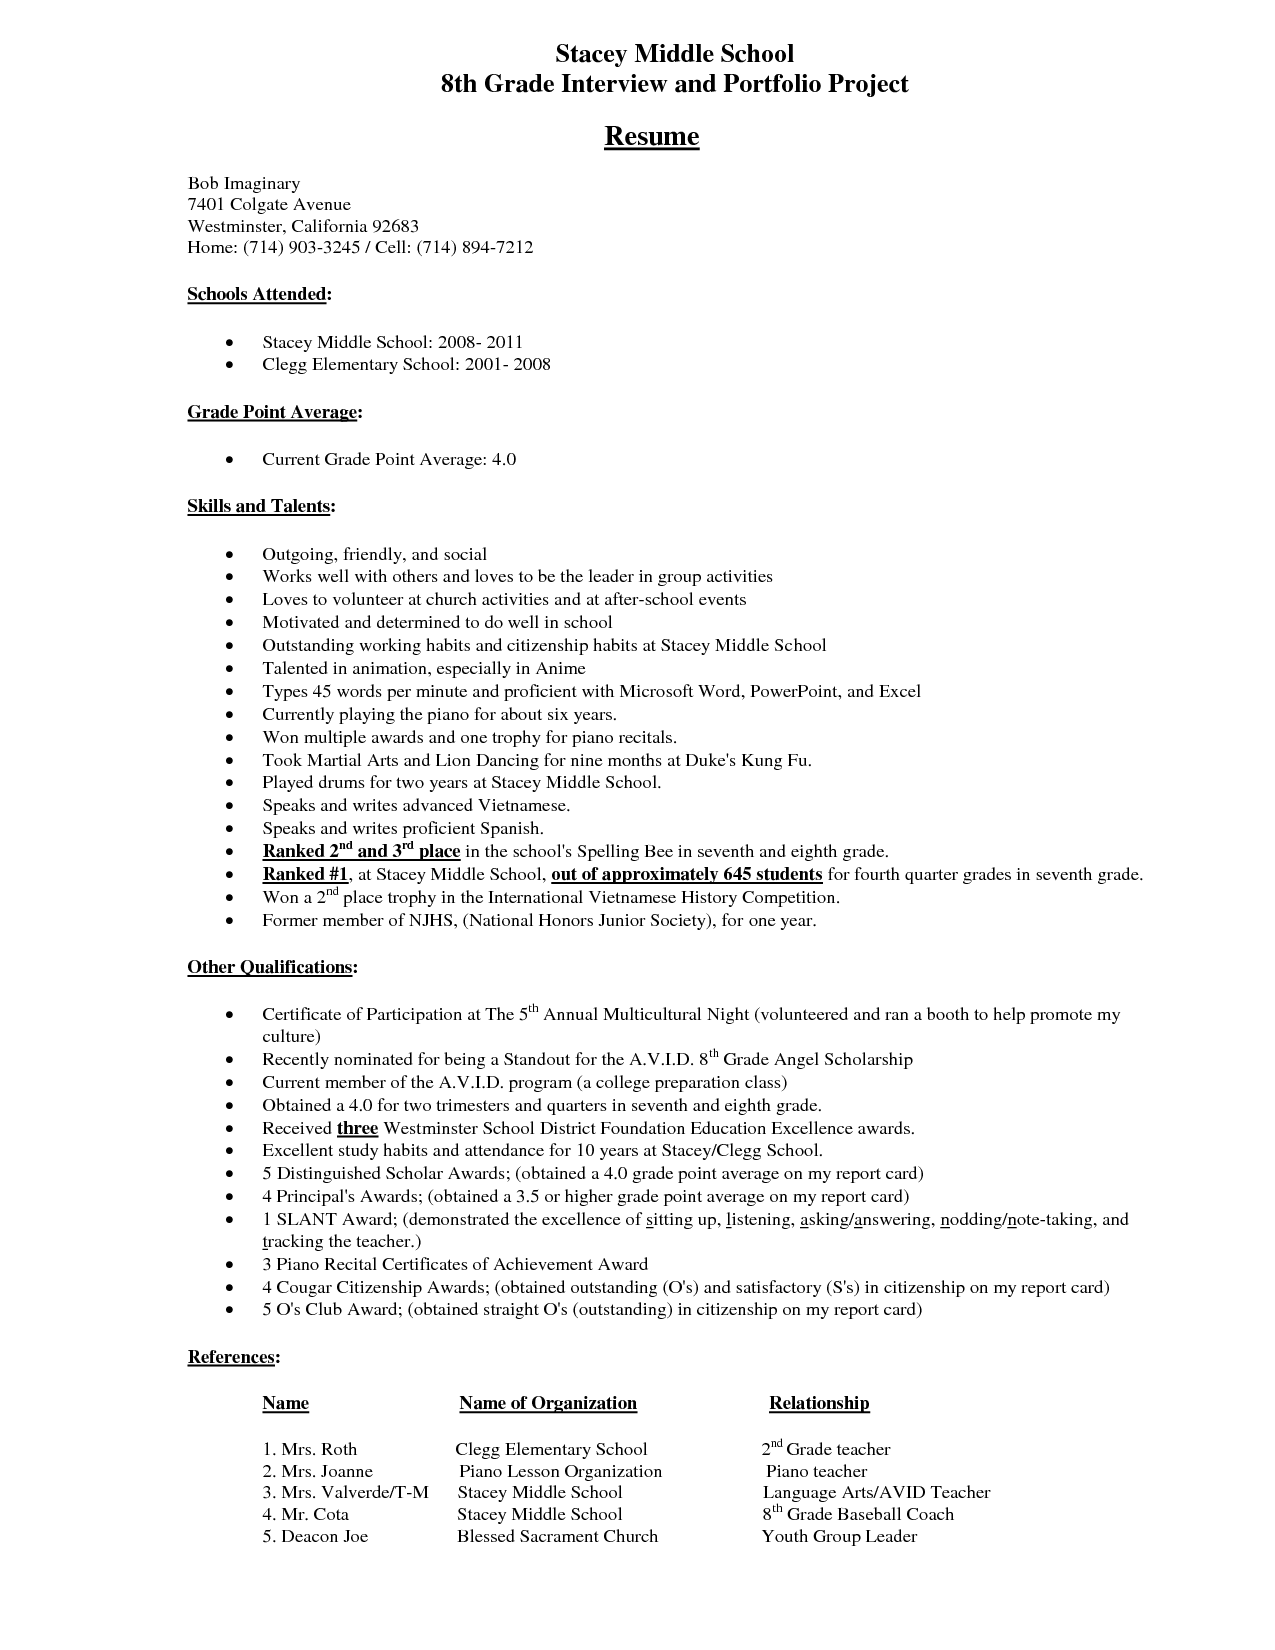 Middle School Student Resume Example Stacey Middle School 8th Grade Interview And Portfolio Project Middle School Speech And Language Study Tips For Students